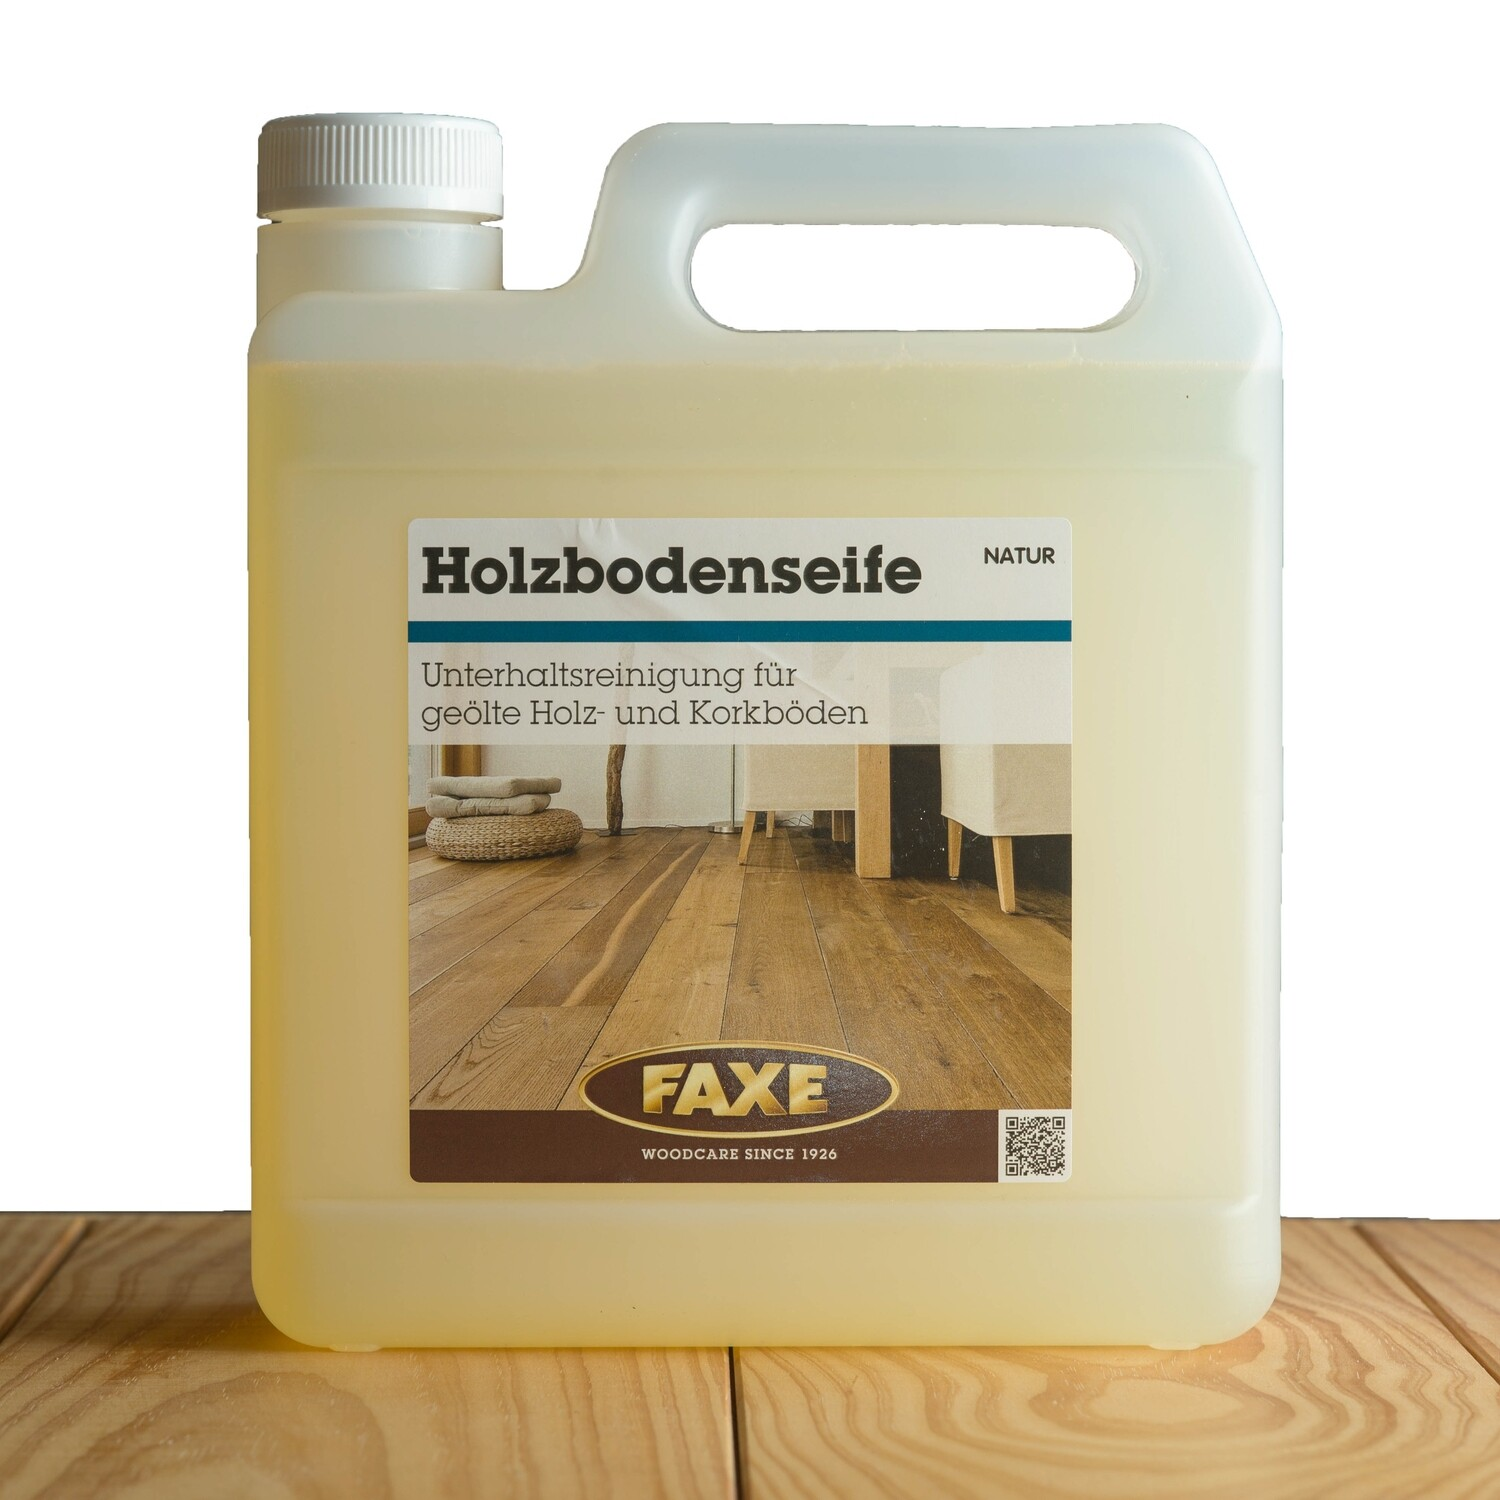 Faxe Holzbodenseife natur 2,5 l